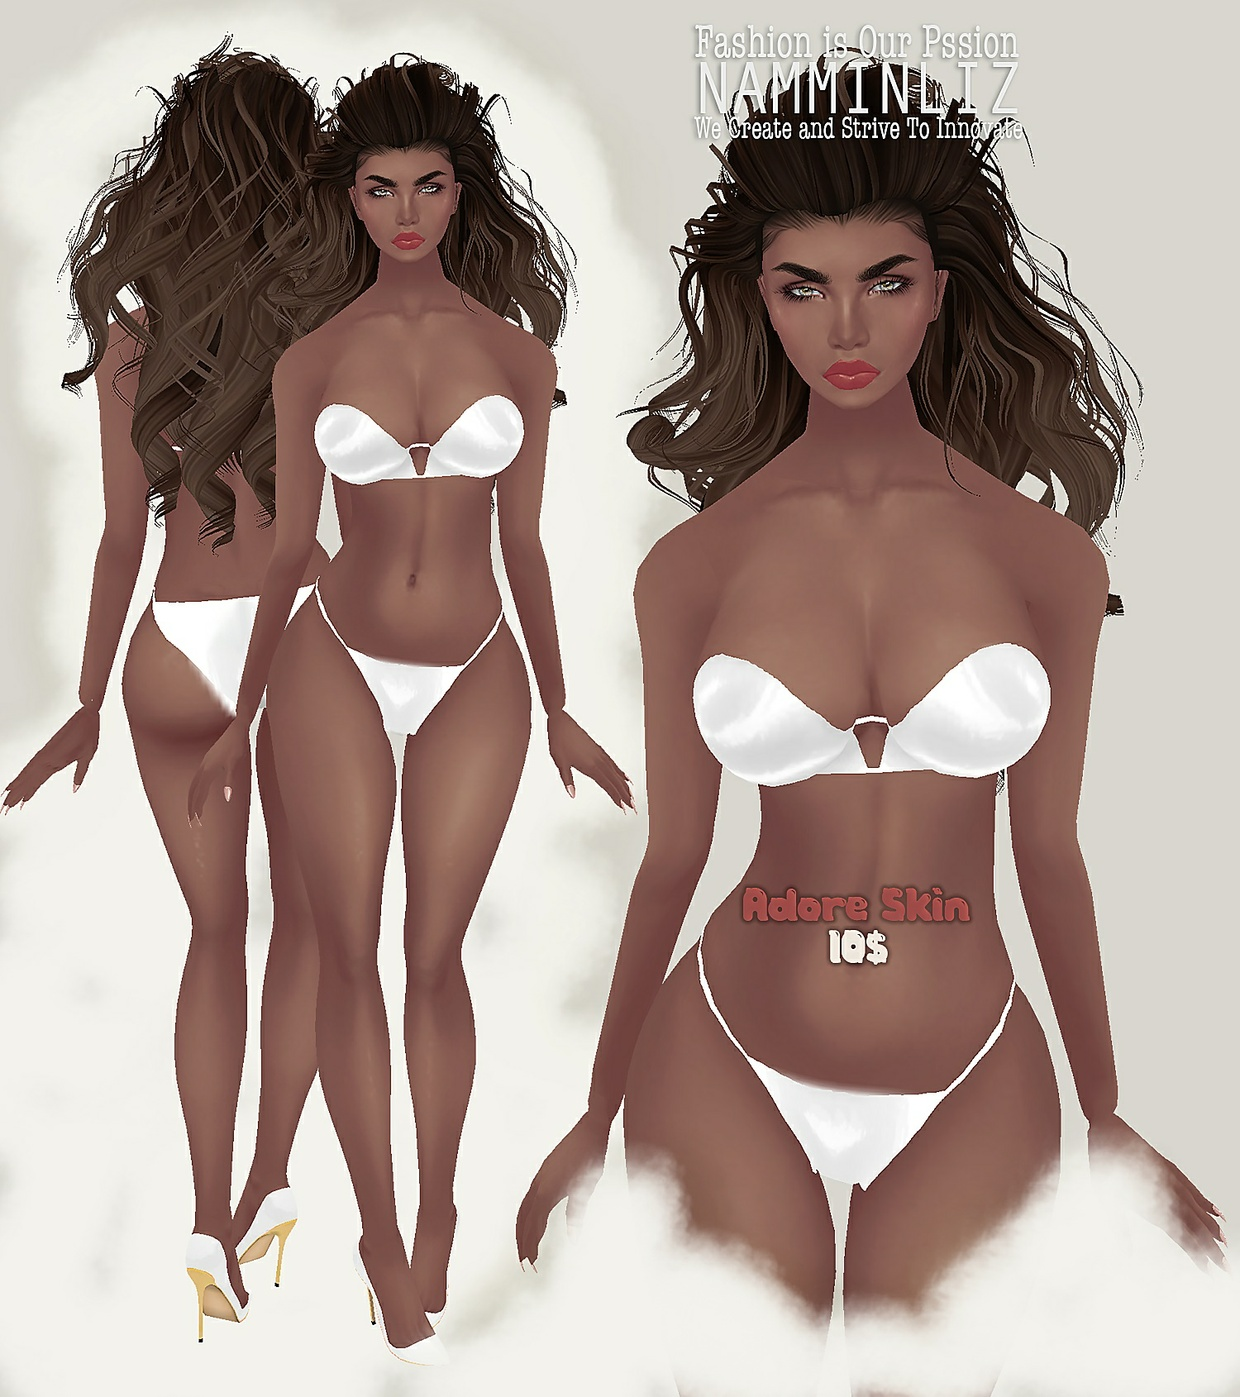 Realistic Fall Adore skin PNG